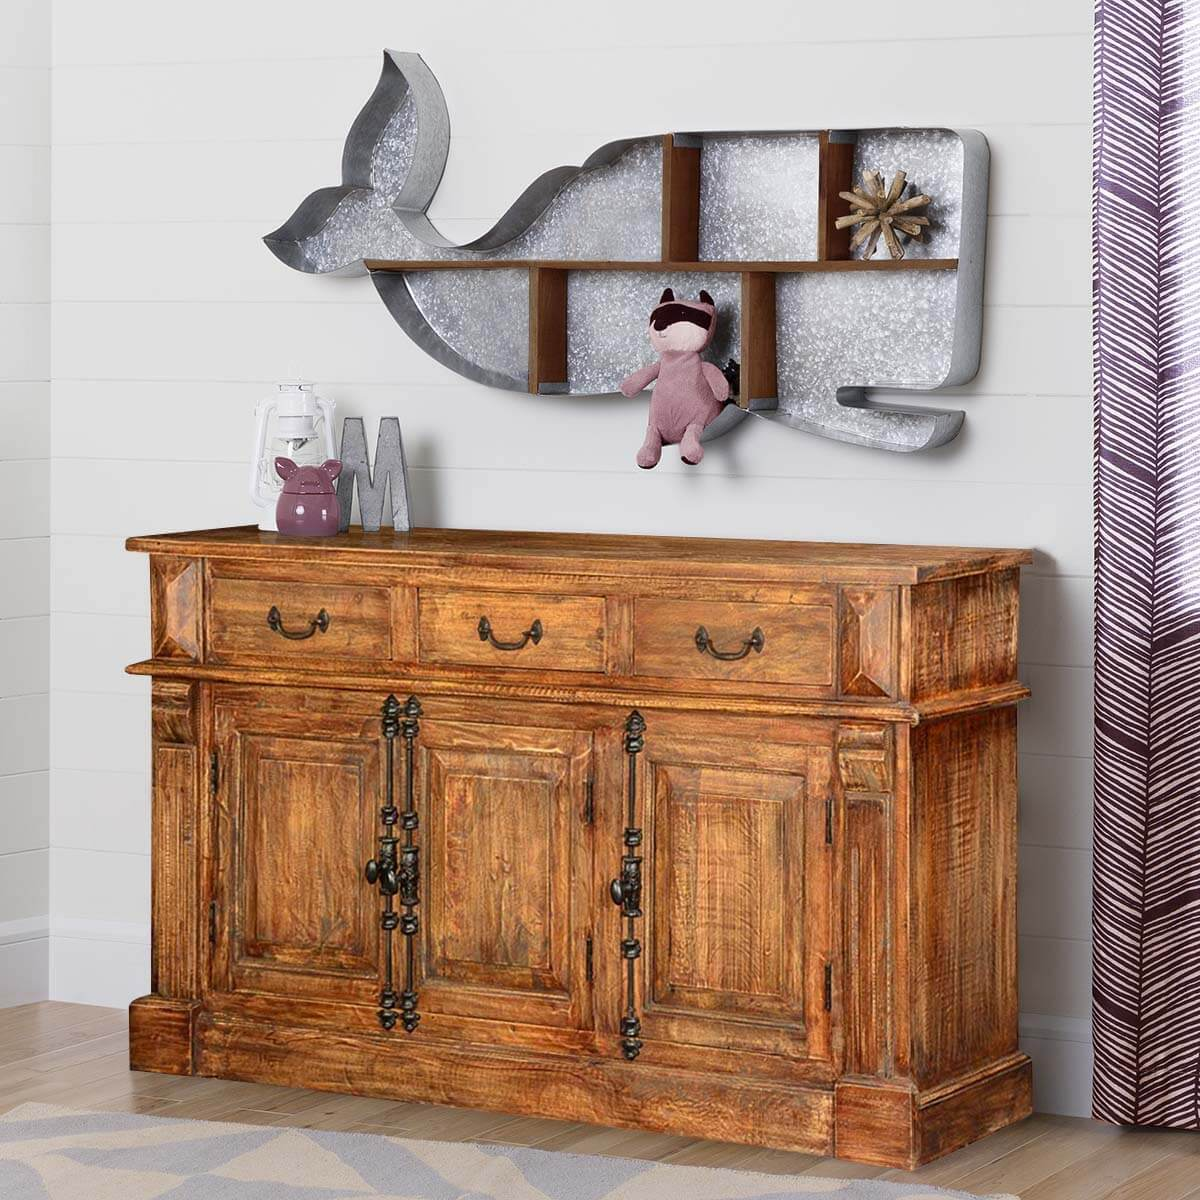 Teton Rustic Solid Wood 3 Drawer Sideboard. At Home Pflugerville. Lomax Carpet. Den Furniture. Carera Marble. Heartland Cabinetry. Sideboard Cabinet. Bedroom Makeup Vanity With Lights. Bench Stool